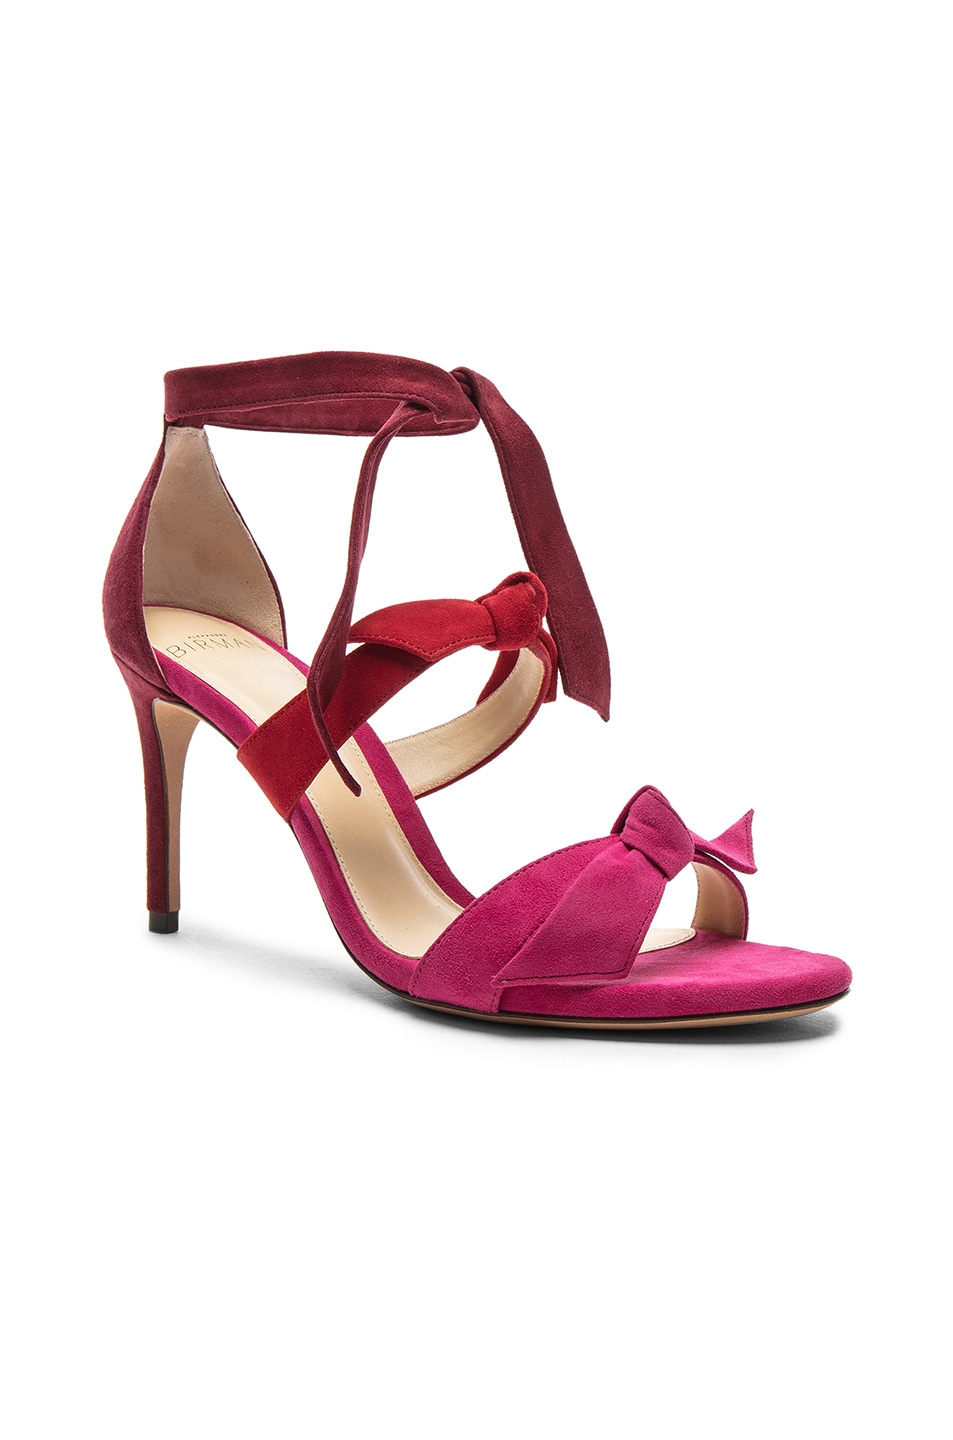 d3be6915b62 Image 2 of Alexandre Birman Suede Lolita Heels in Raspberry